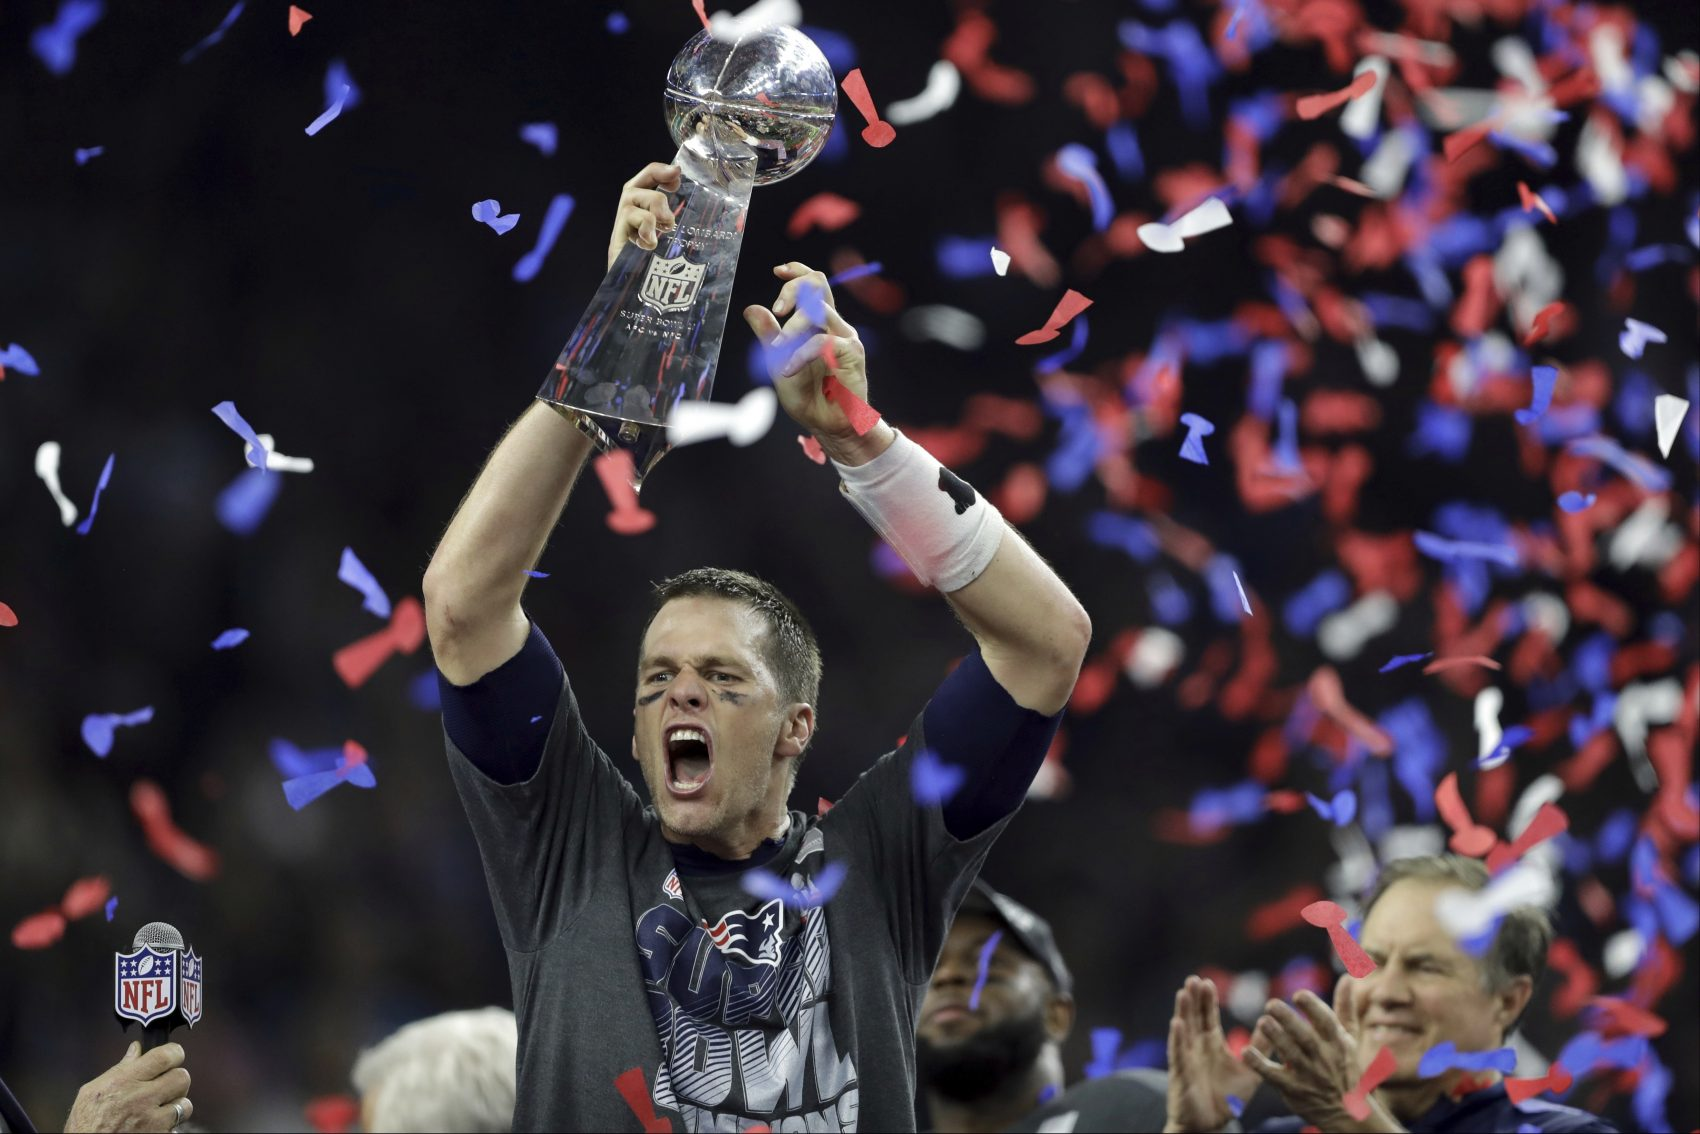 Tom Brady New England Patriots Super Bowl Trophy Celebration